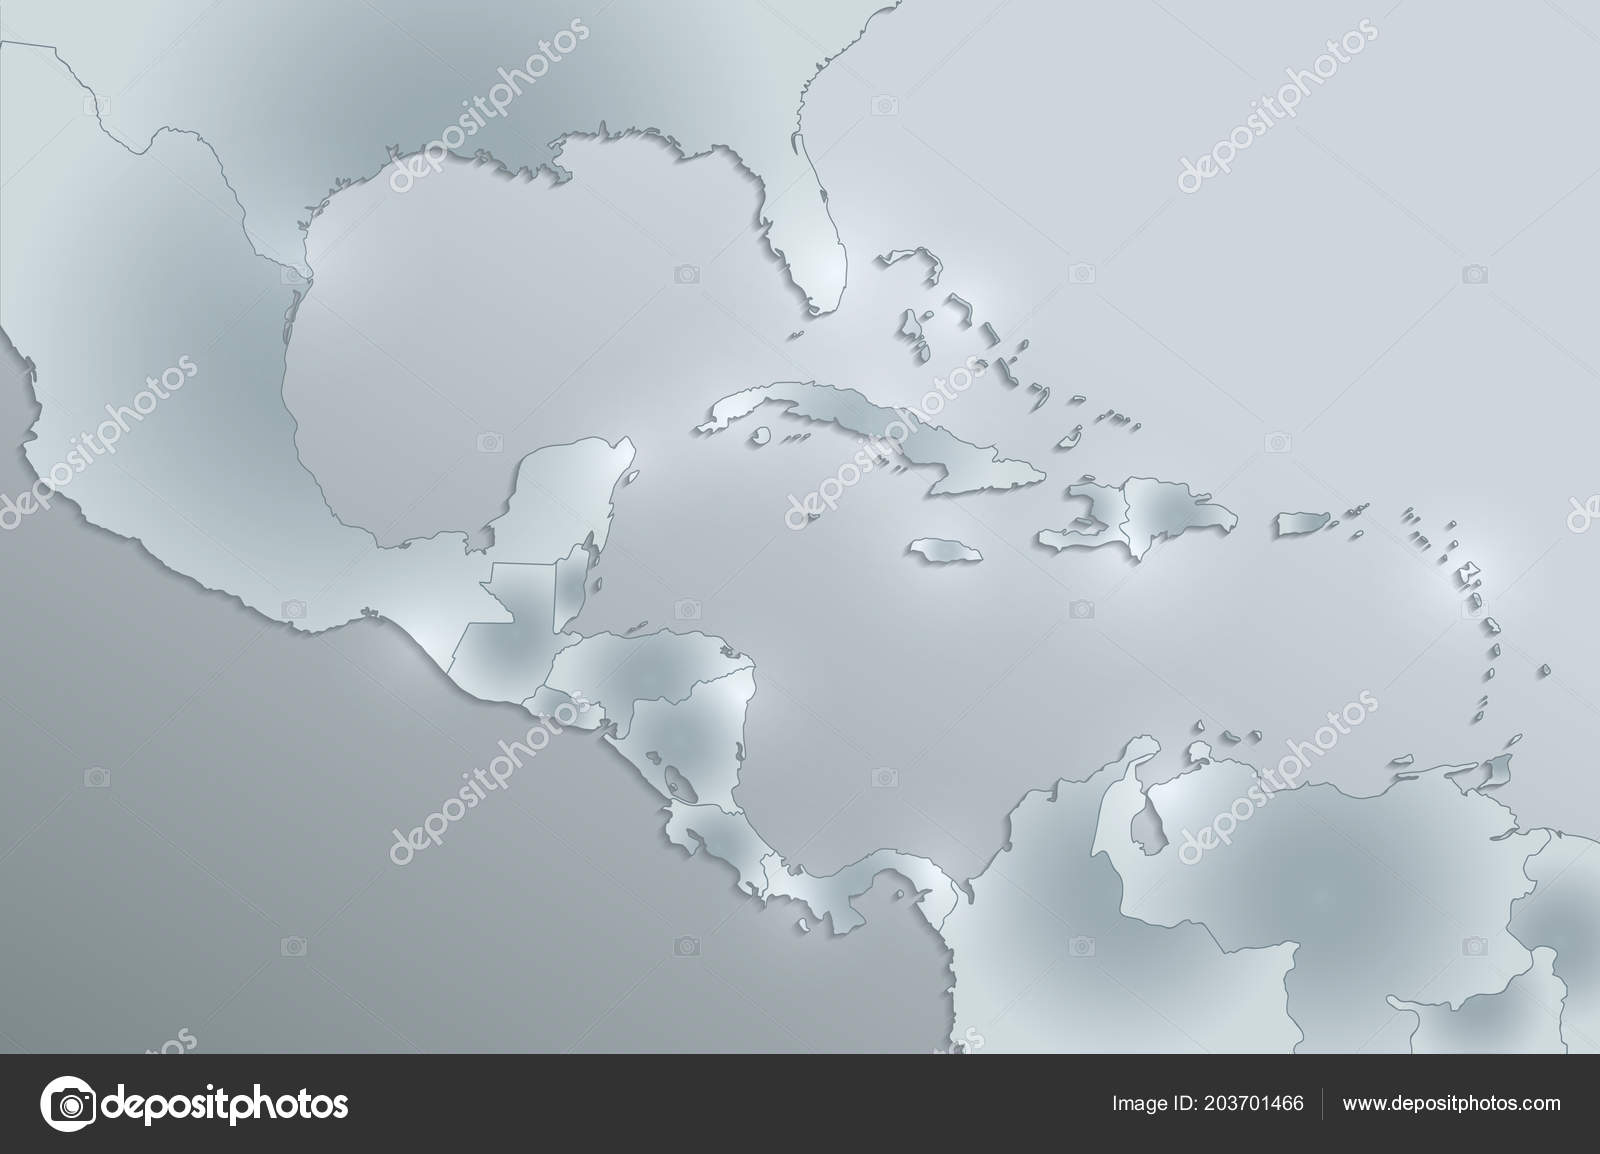 Caribbean Islands Central America Map State Names Separate States ...